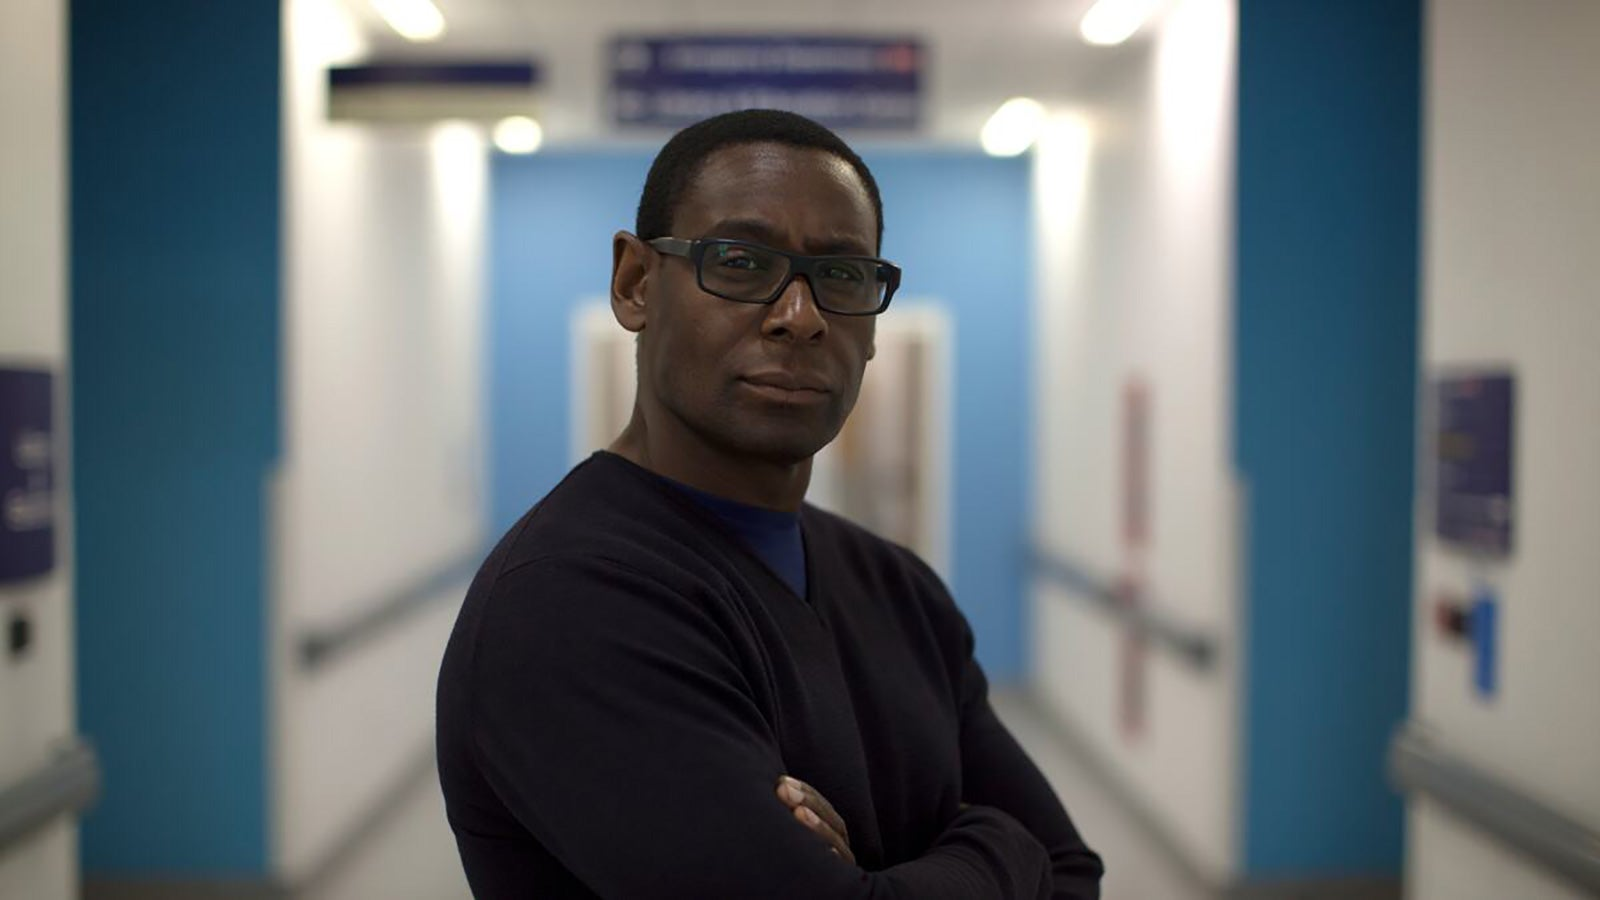 Actor David Harewood stands facing the camera with his arms crossed in a hospital ward.